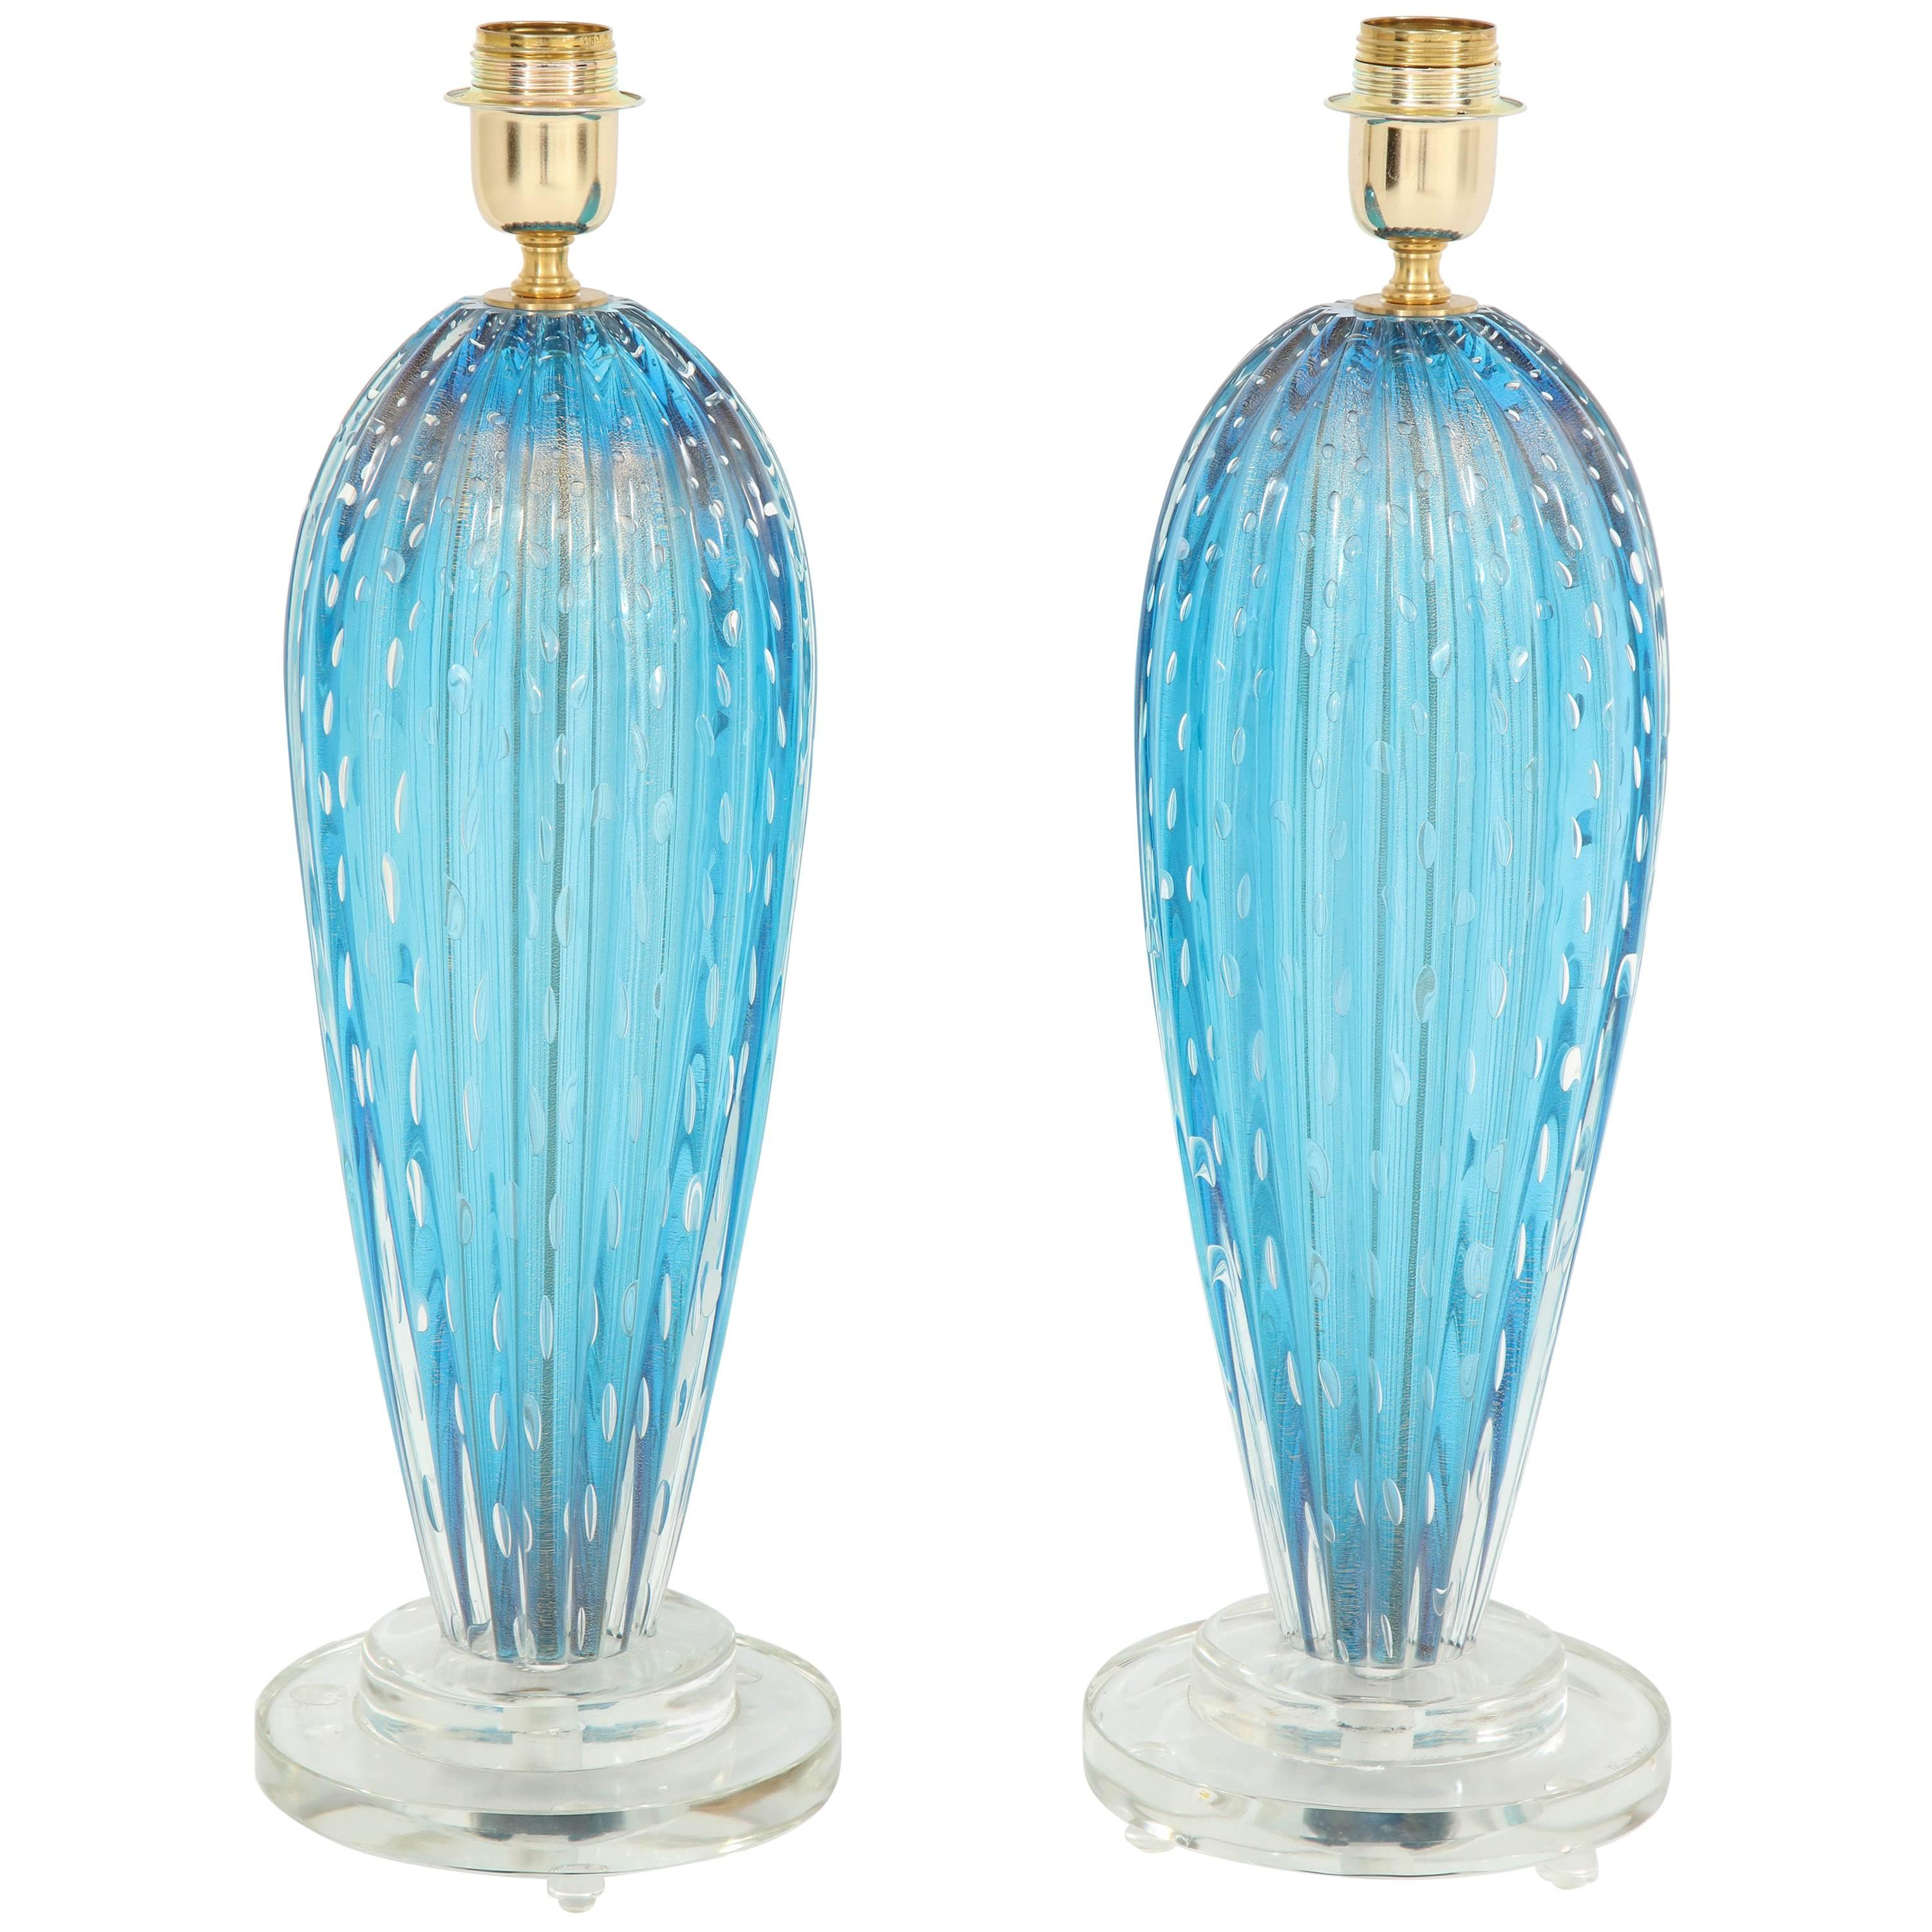 Pair of Blue Murano Glass Lamps